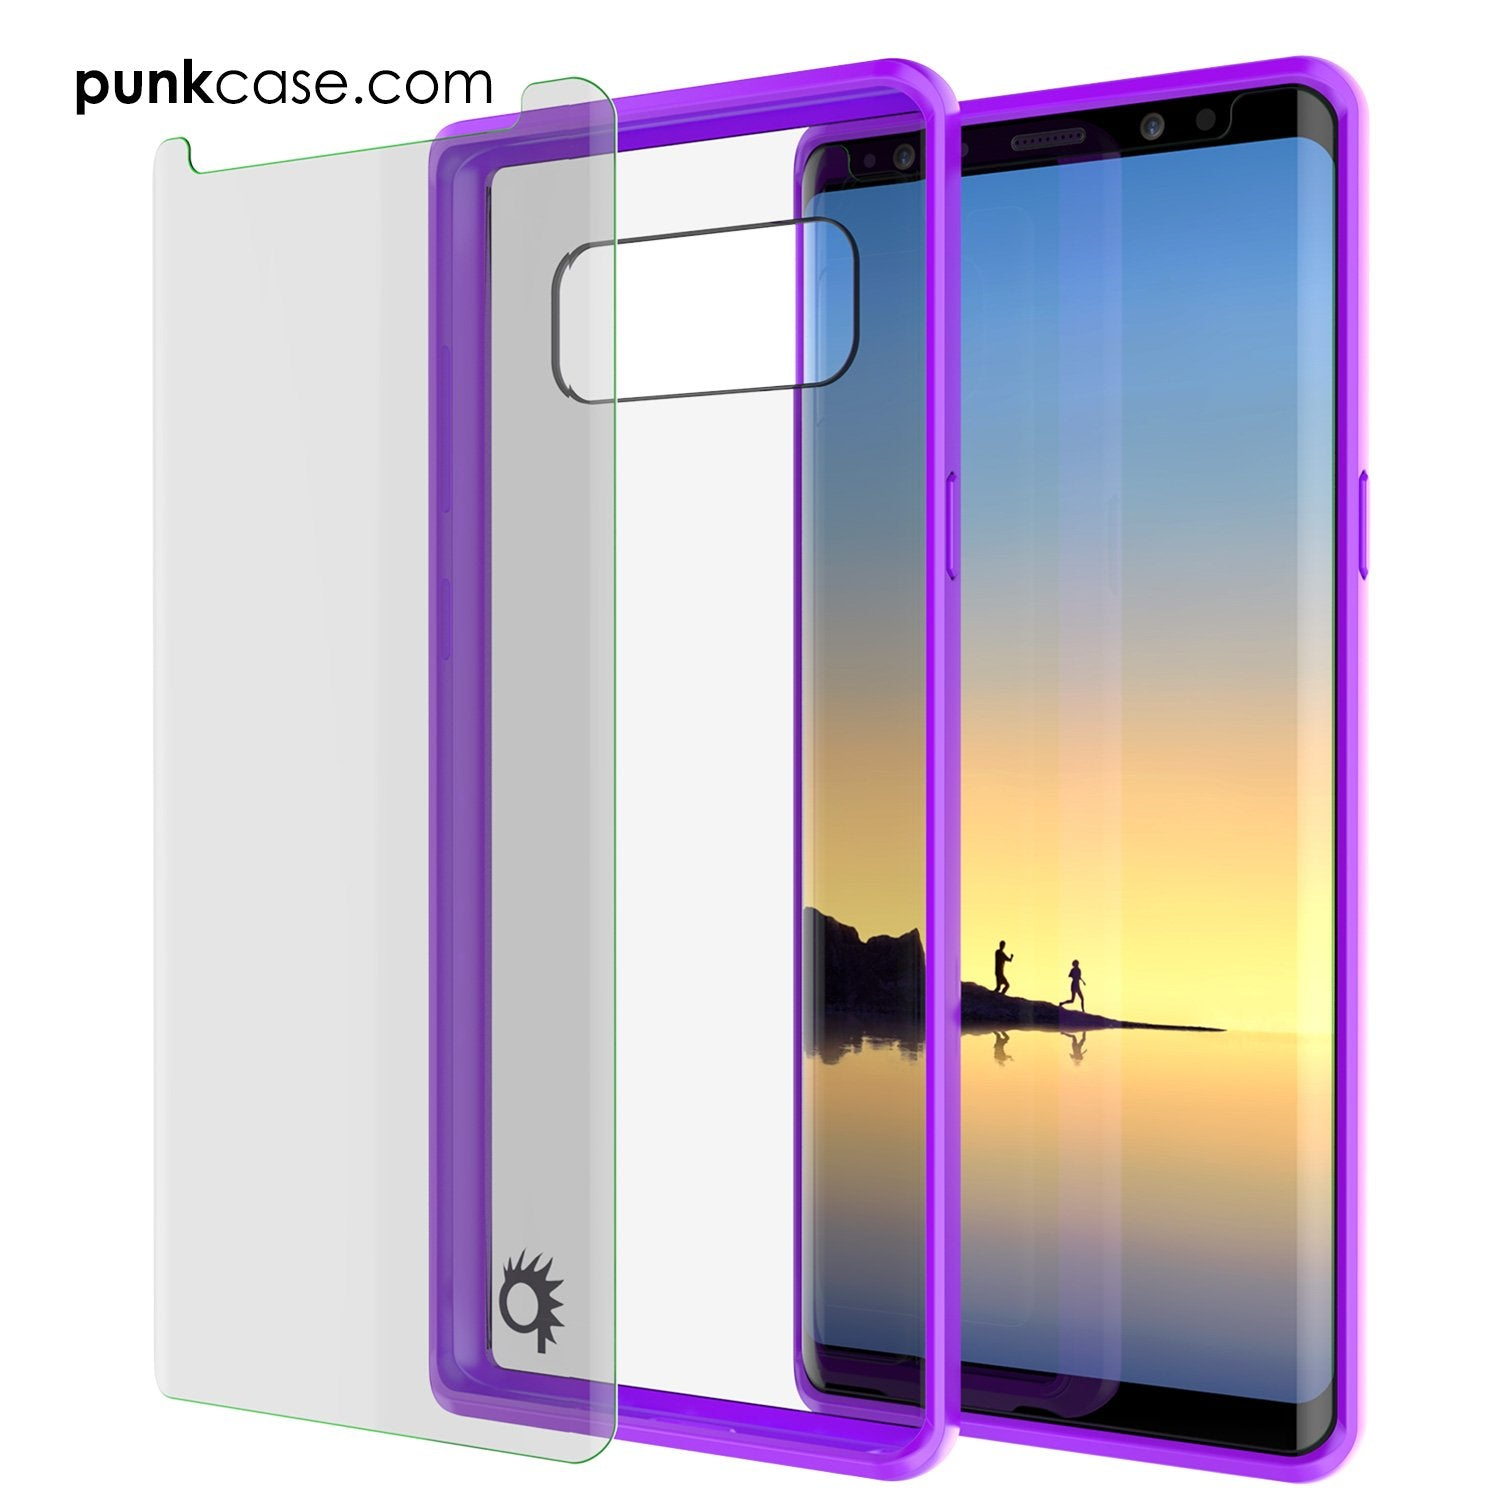 Galaxy Note 8 Case, PUNKcase [LUCID 2.0 Series] [Slim Fit] Armor Cover w/Integrated Anti-Shock System & PUNKSHIELD Screen Protector [Purple] - PunkCase NZ